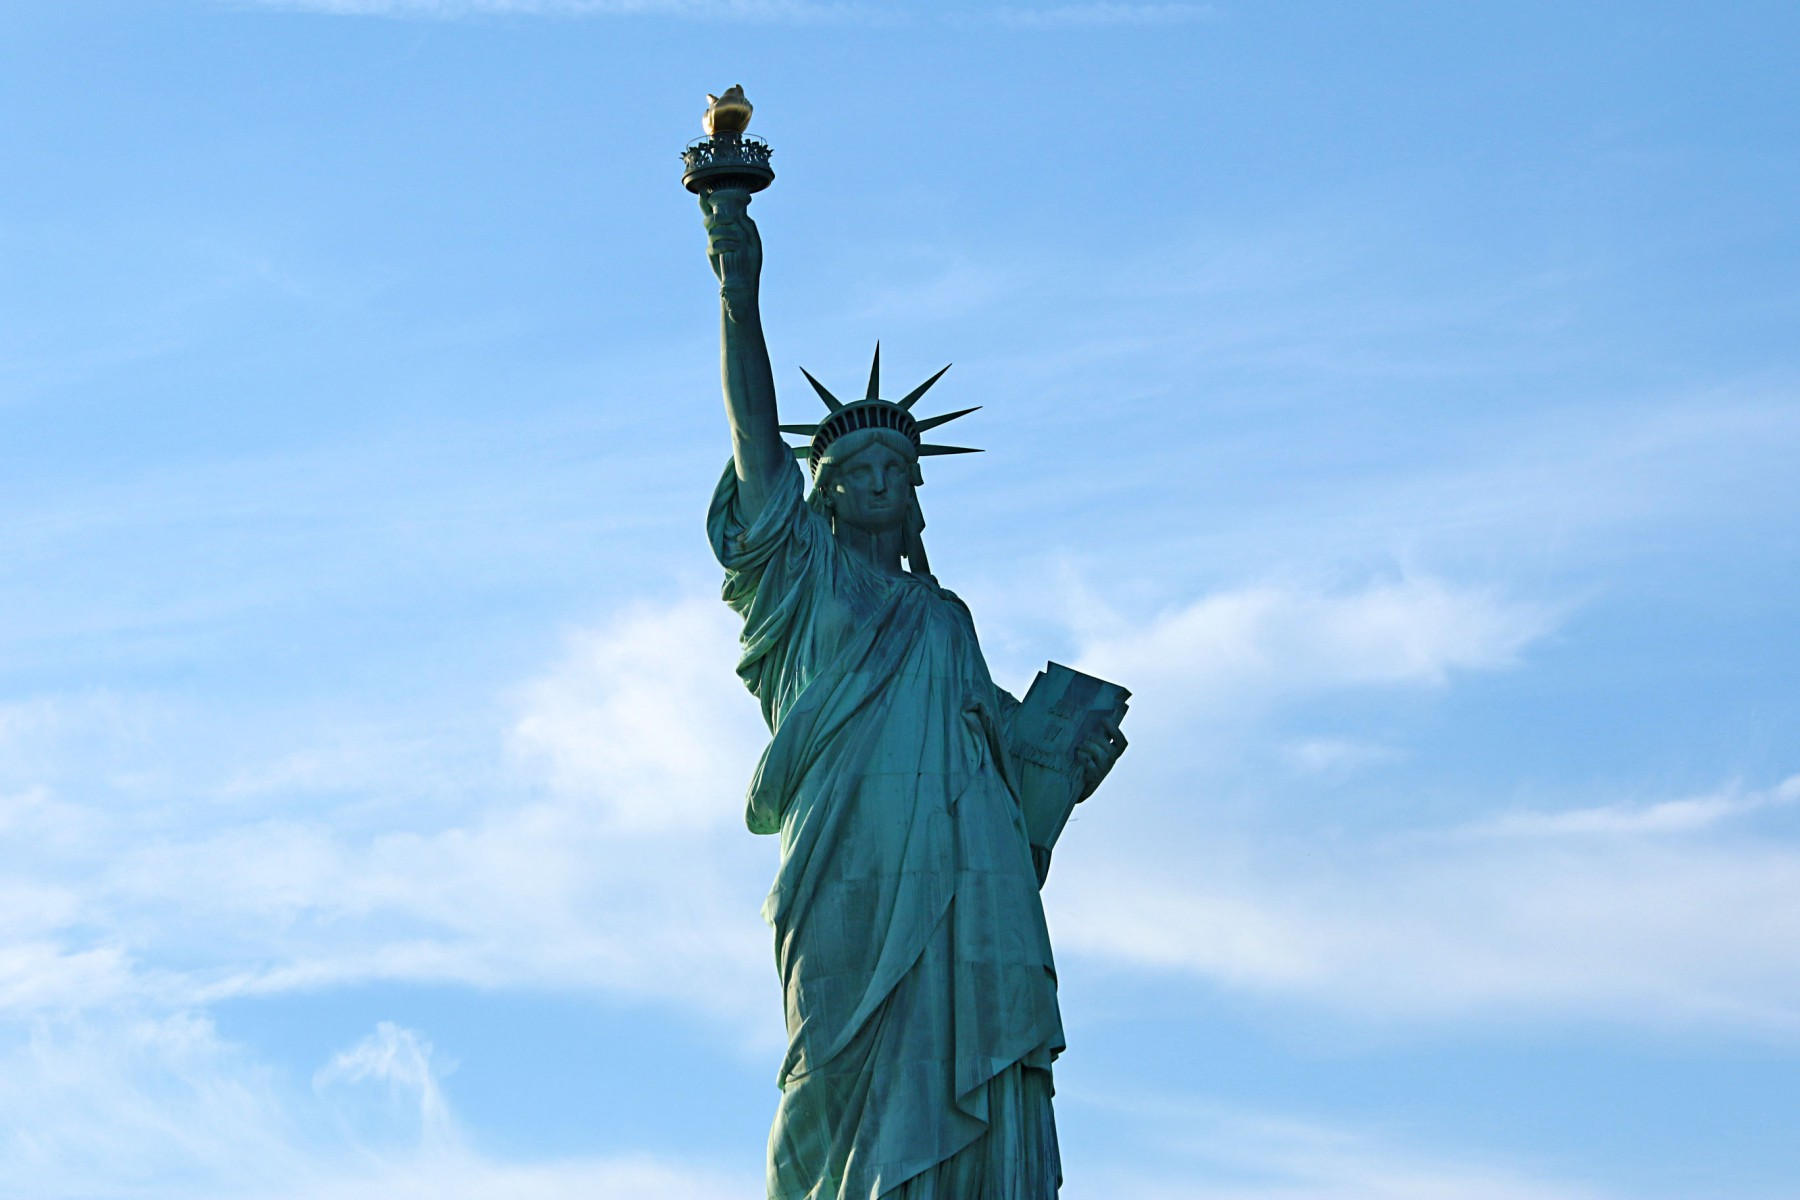 New York, Freiheitsstatue, Statue of Liberty